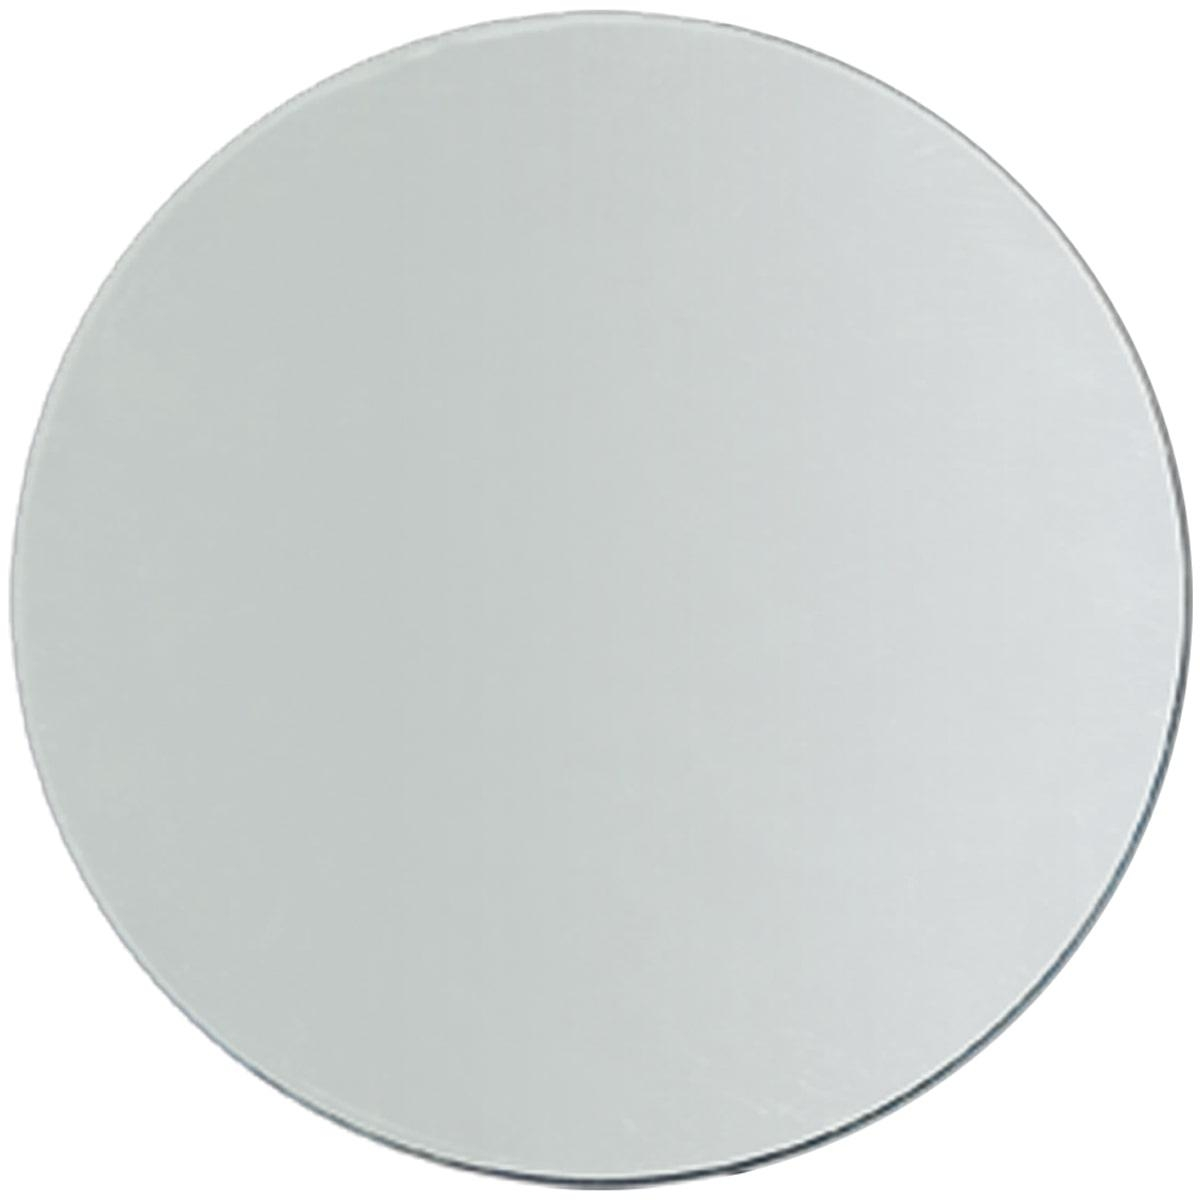 Large Round Mirrors With Regard To Large Round Black Mirror (Image 12 of 20)